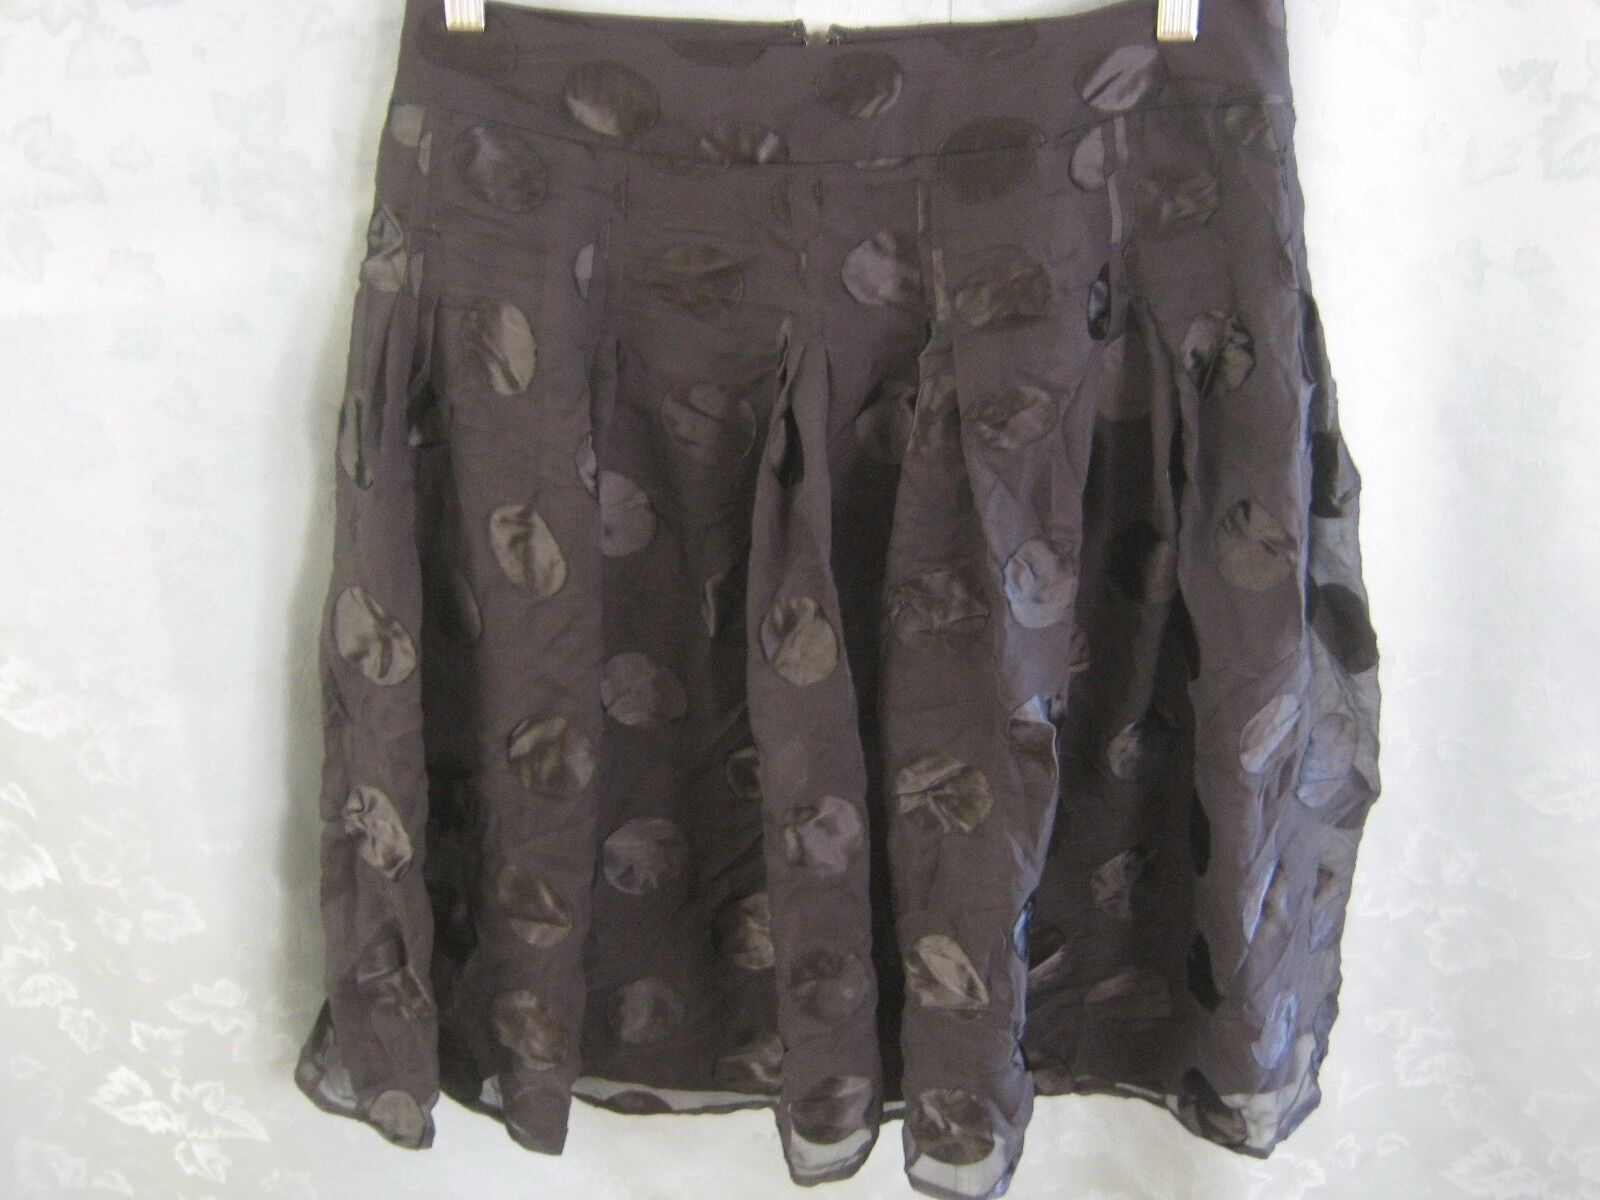 DKNYC Silk Blend Times Square Skirt Size 4 NWT Lined